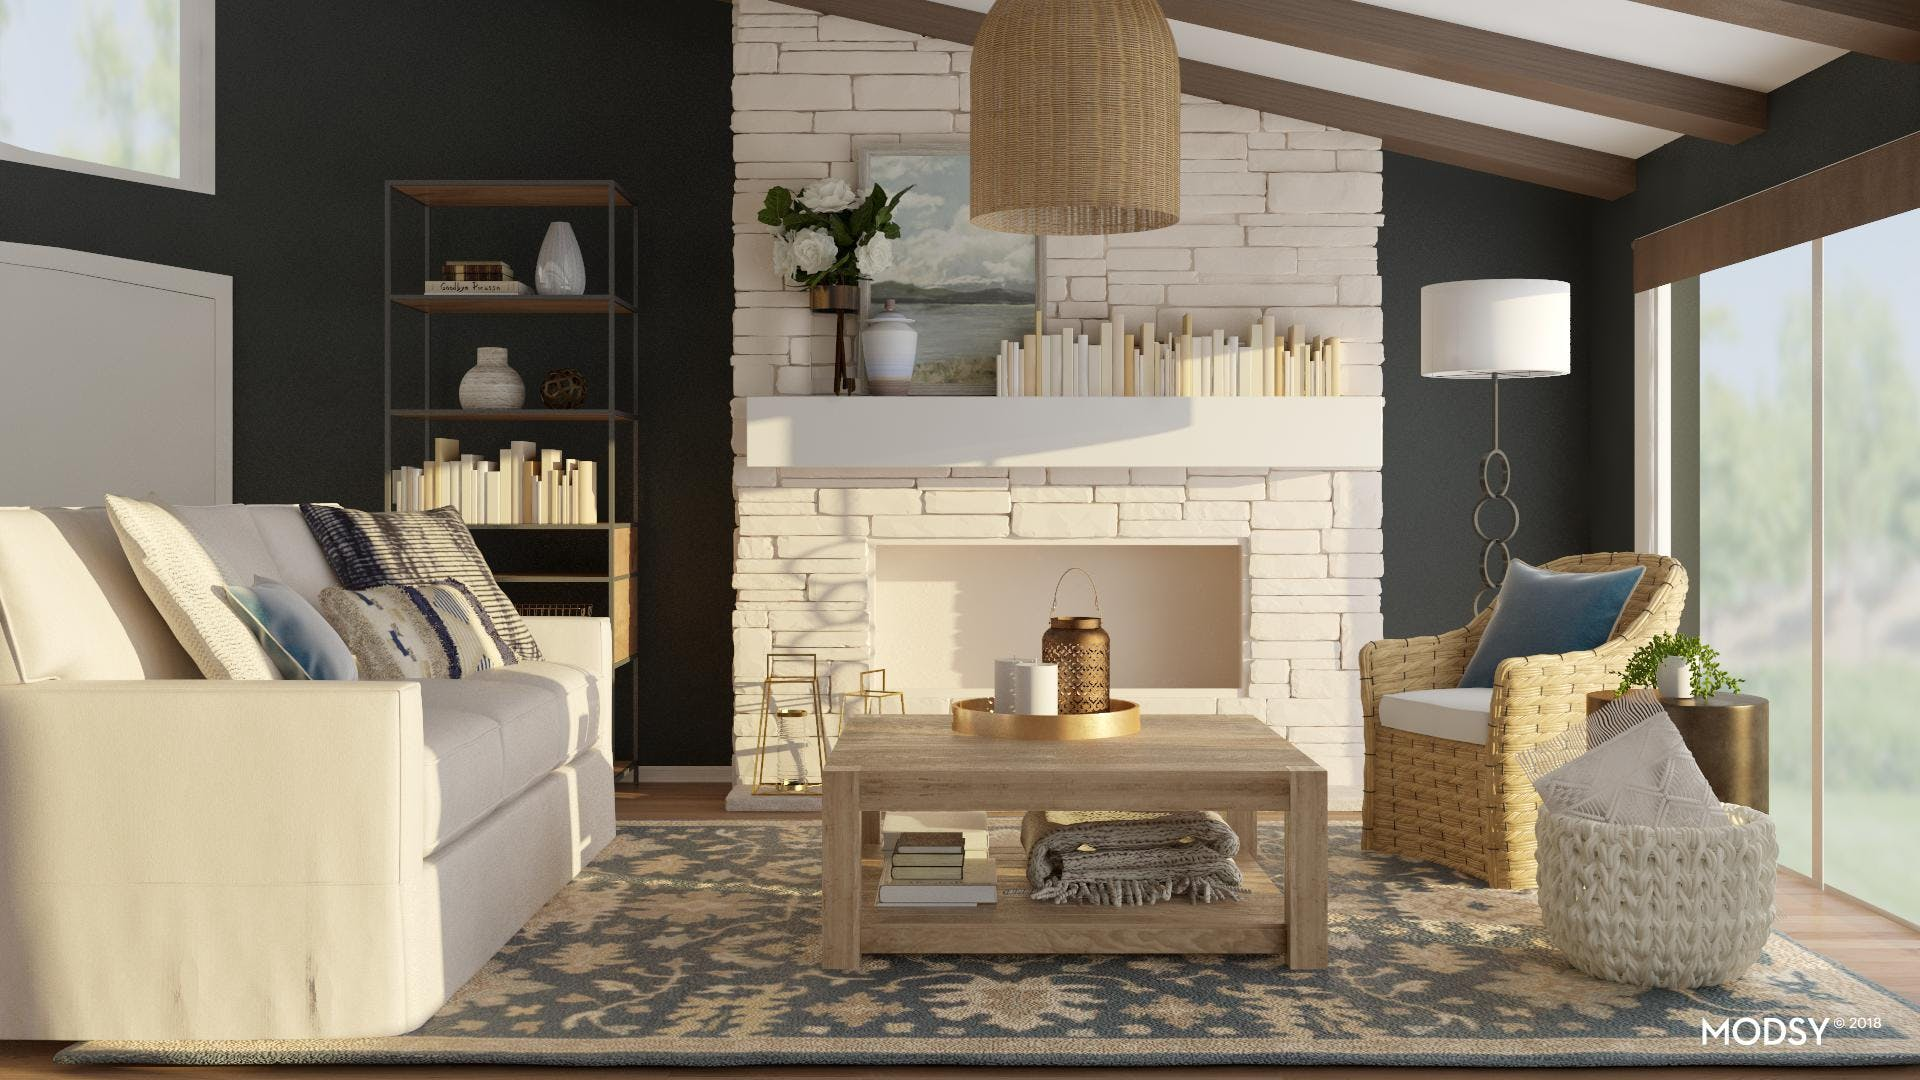 Liven Up The Modern Farmhouse Look